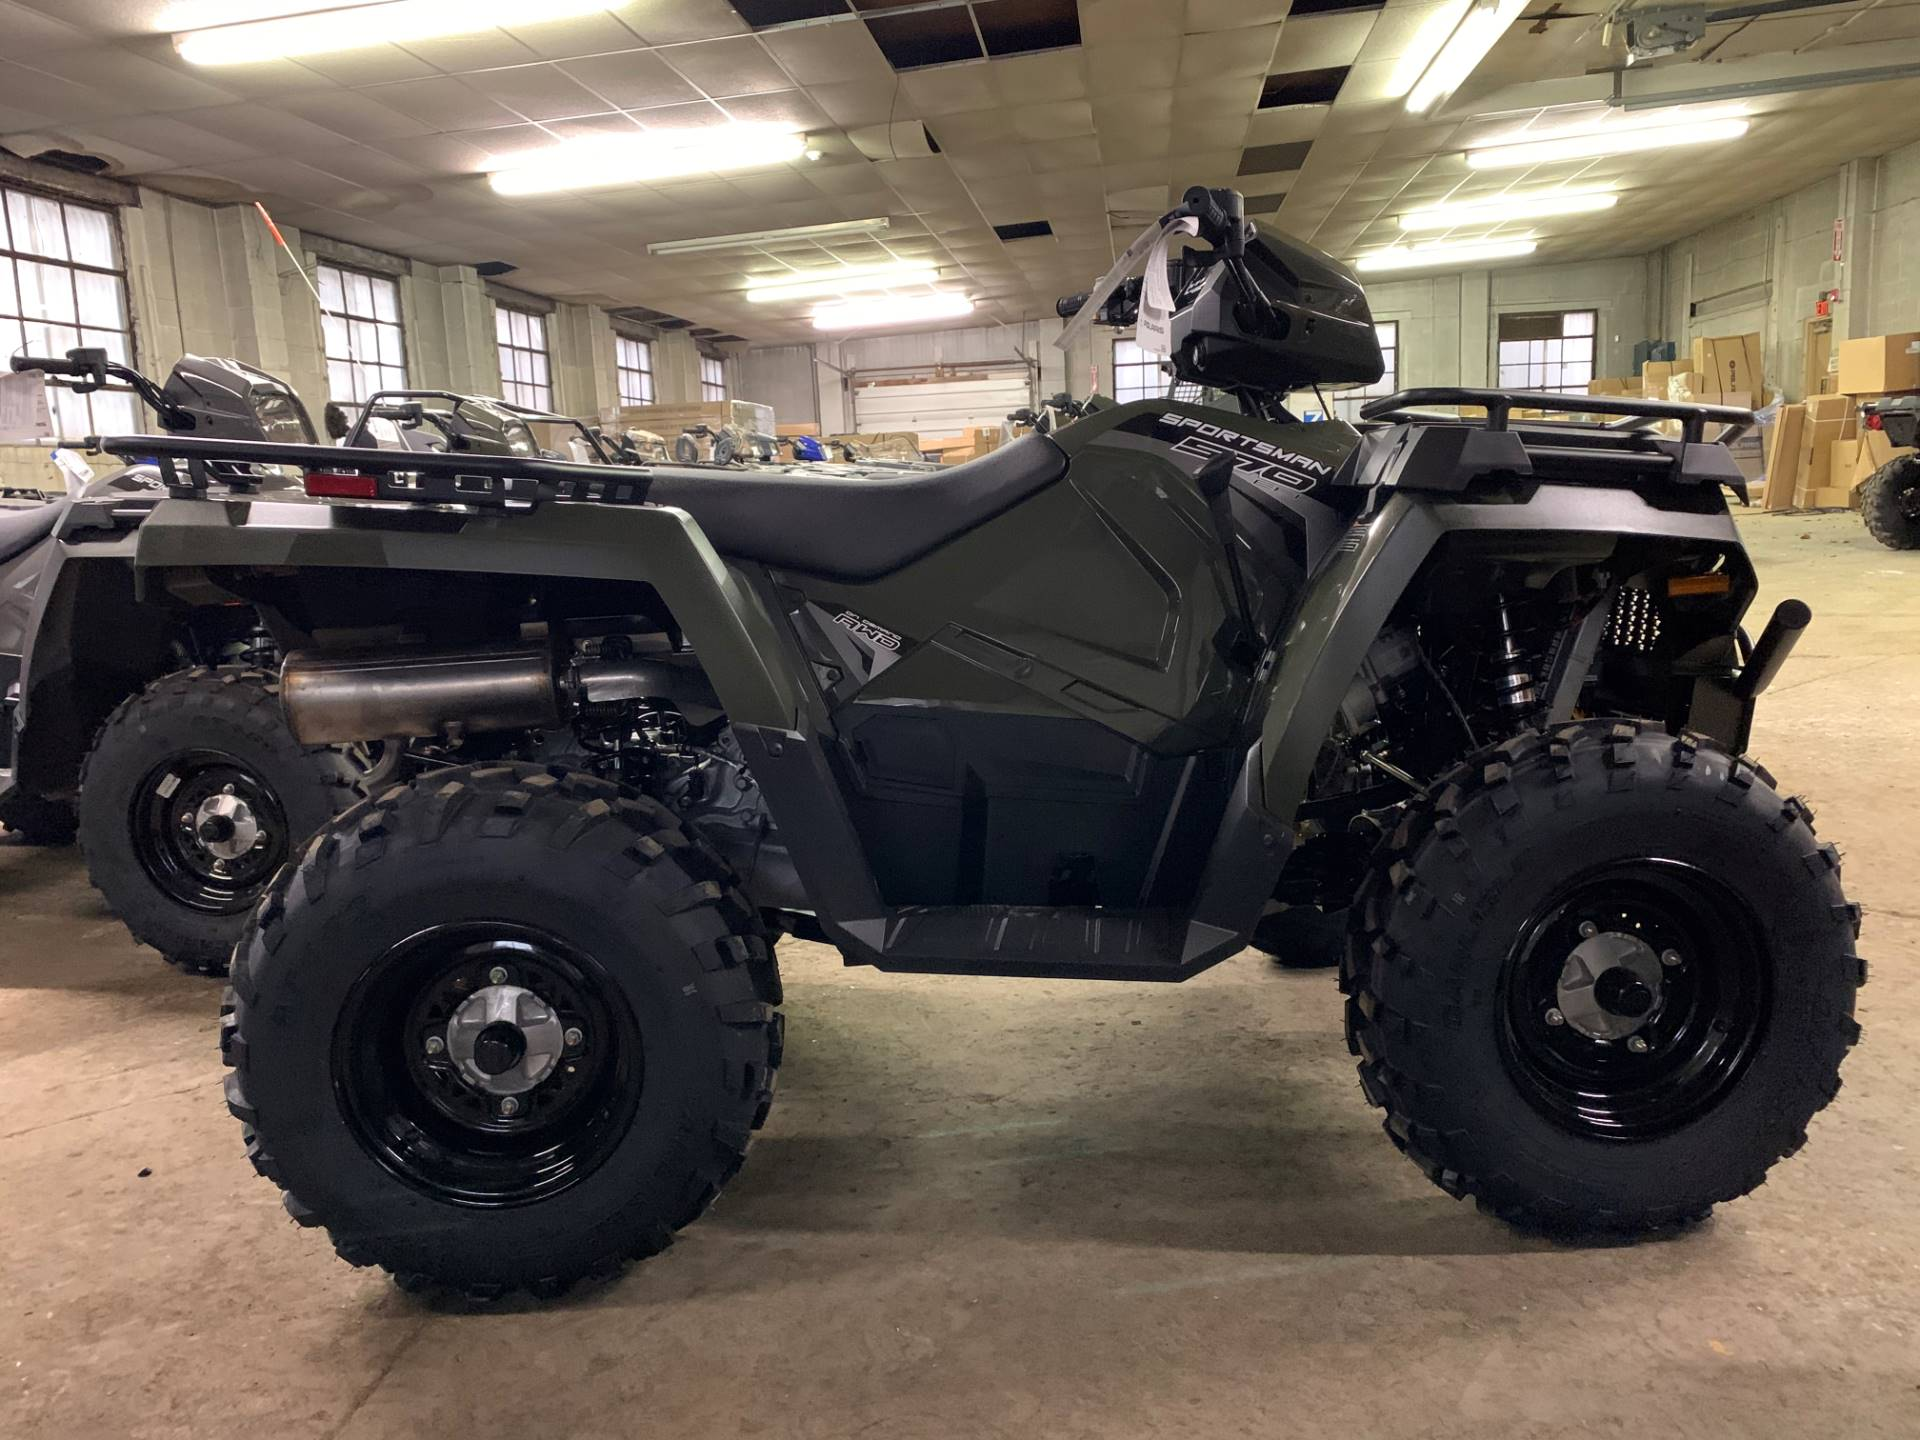 2020 Polaris Sportsman 570 EPS Utility Package in Chicora, Pennsylvania - Photo 2